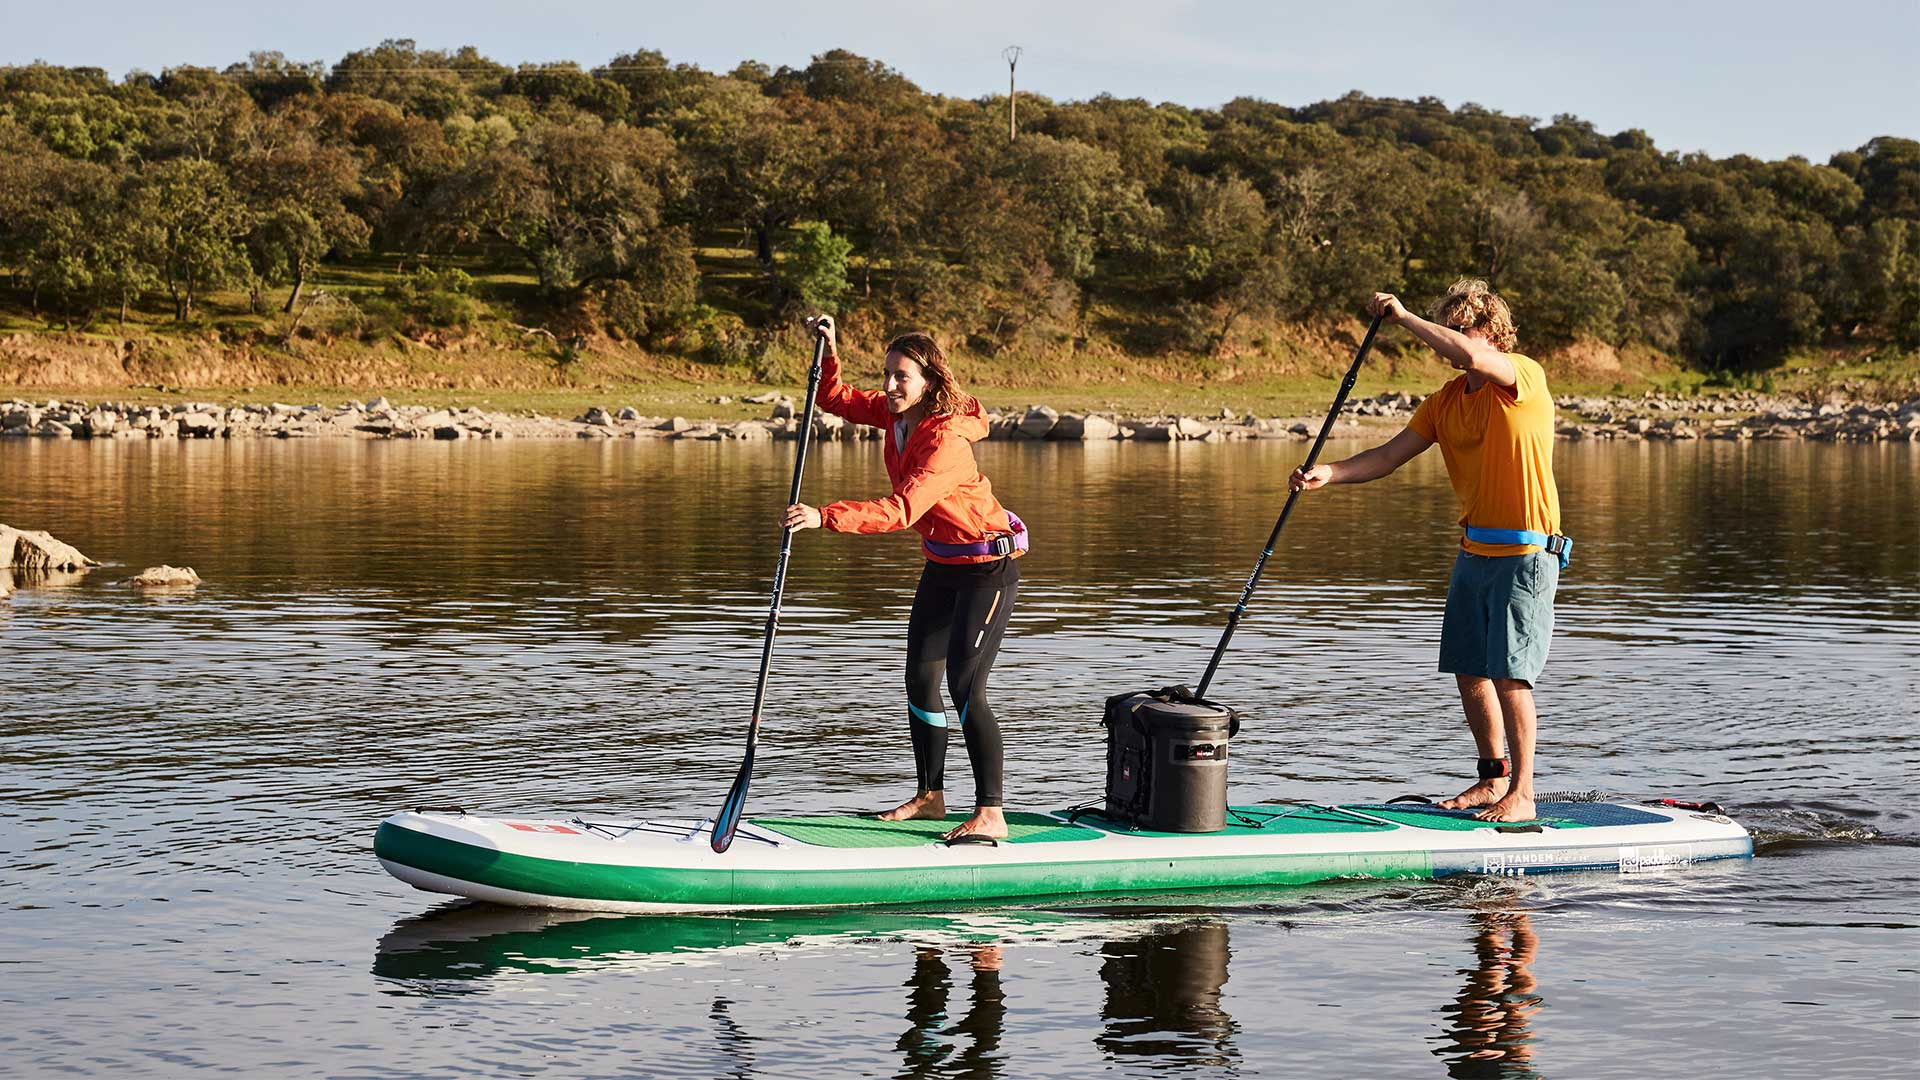 redpaddleco-150-voyager-tandem-inflatable-paddle-board-desktop-gallery-2